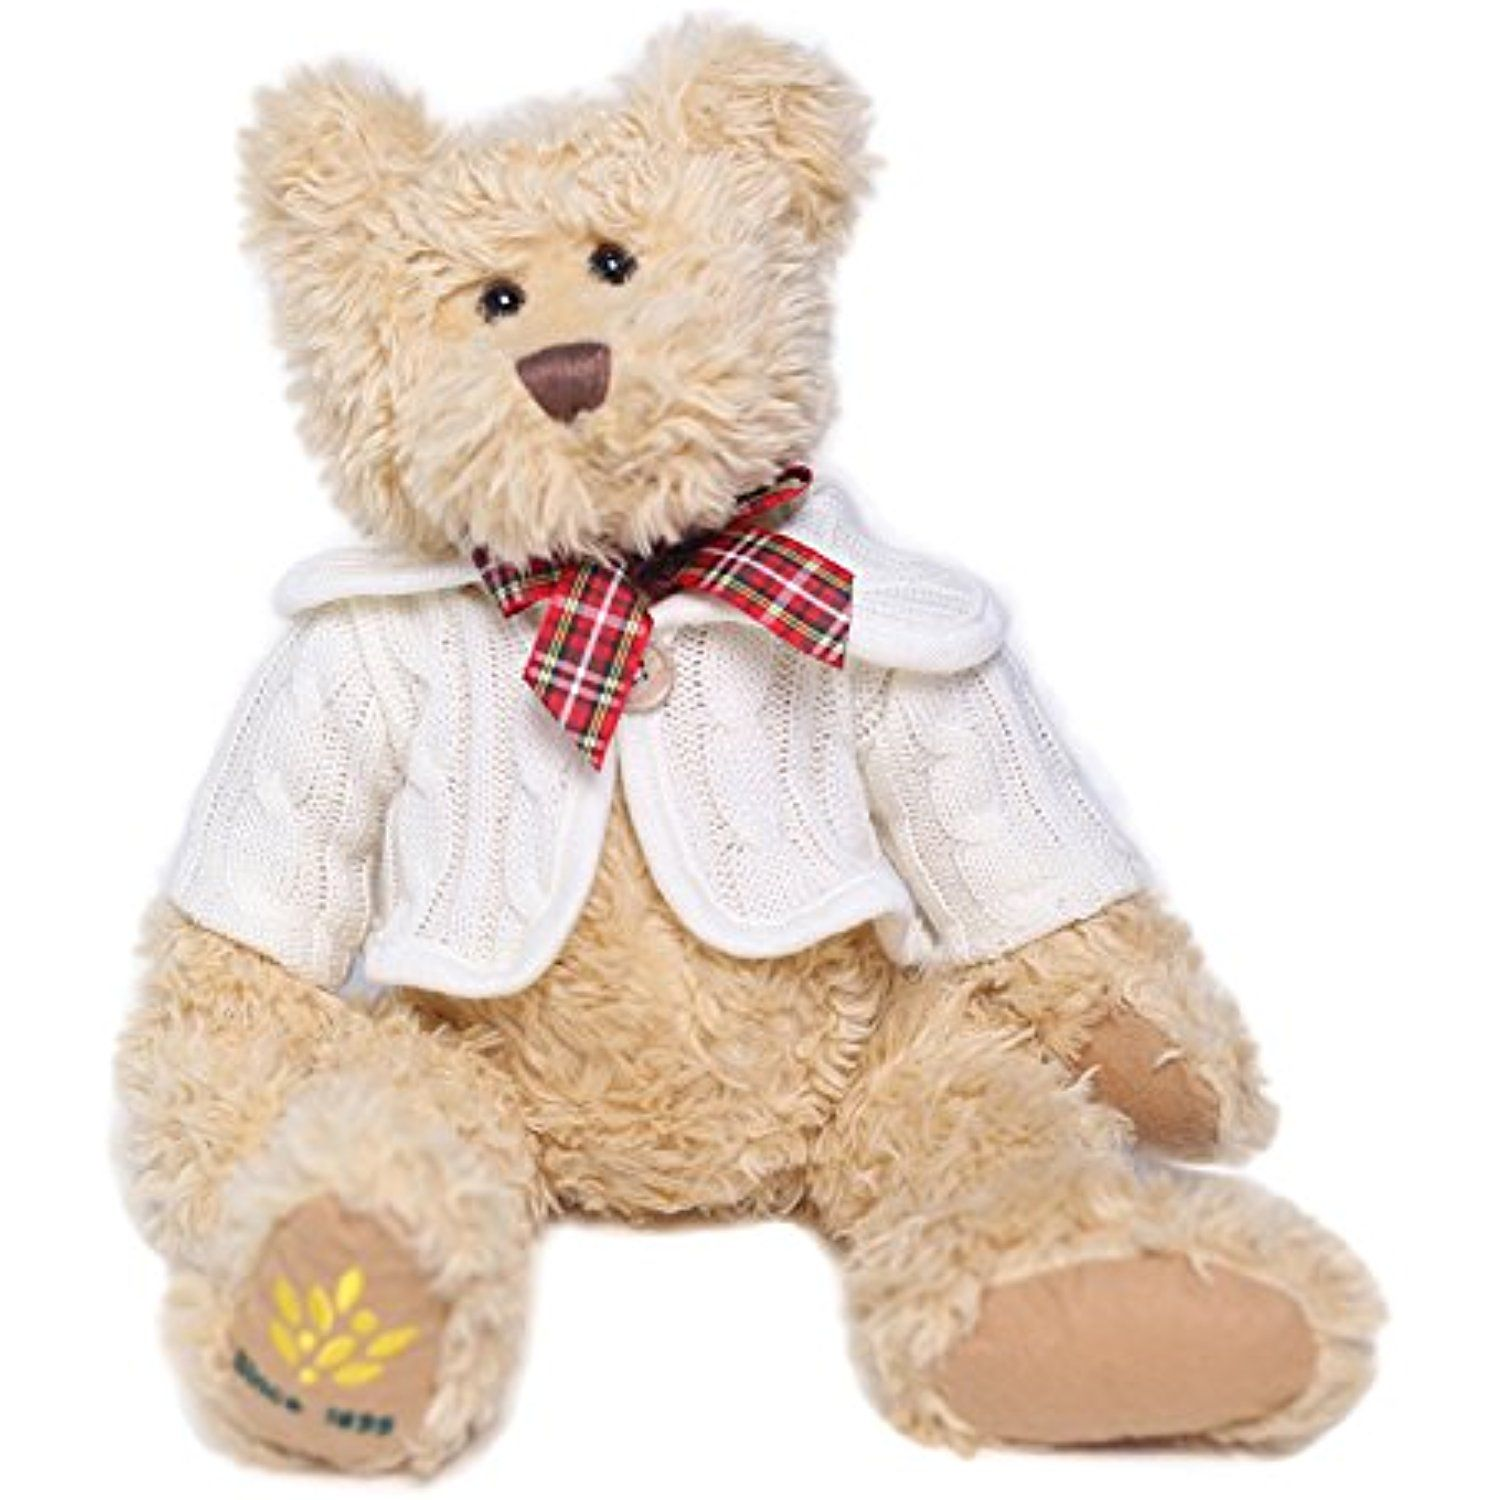 Teddy Bear 15 Inch Plush Classic Stuffed Animal With England Bowtie And Detachable Sweater Tan By Hollyhome Che Teddy Bear Stuffed Animal Animals Teddy Bear [ 1500 x 1500 Pixel ]